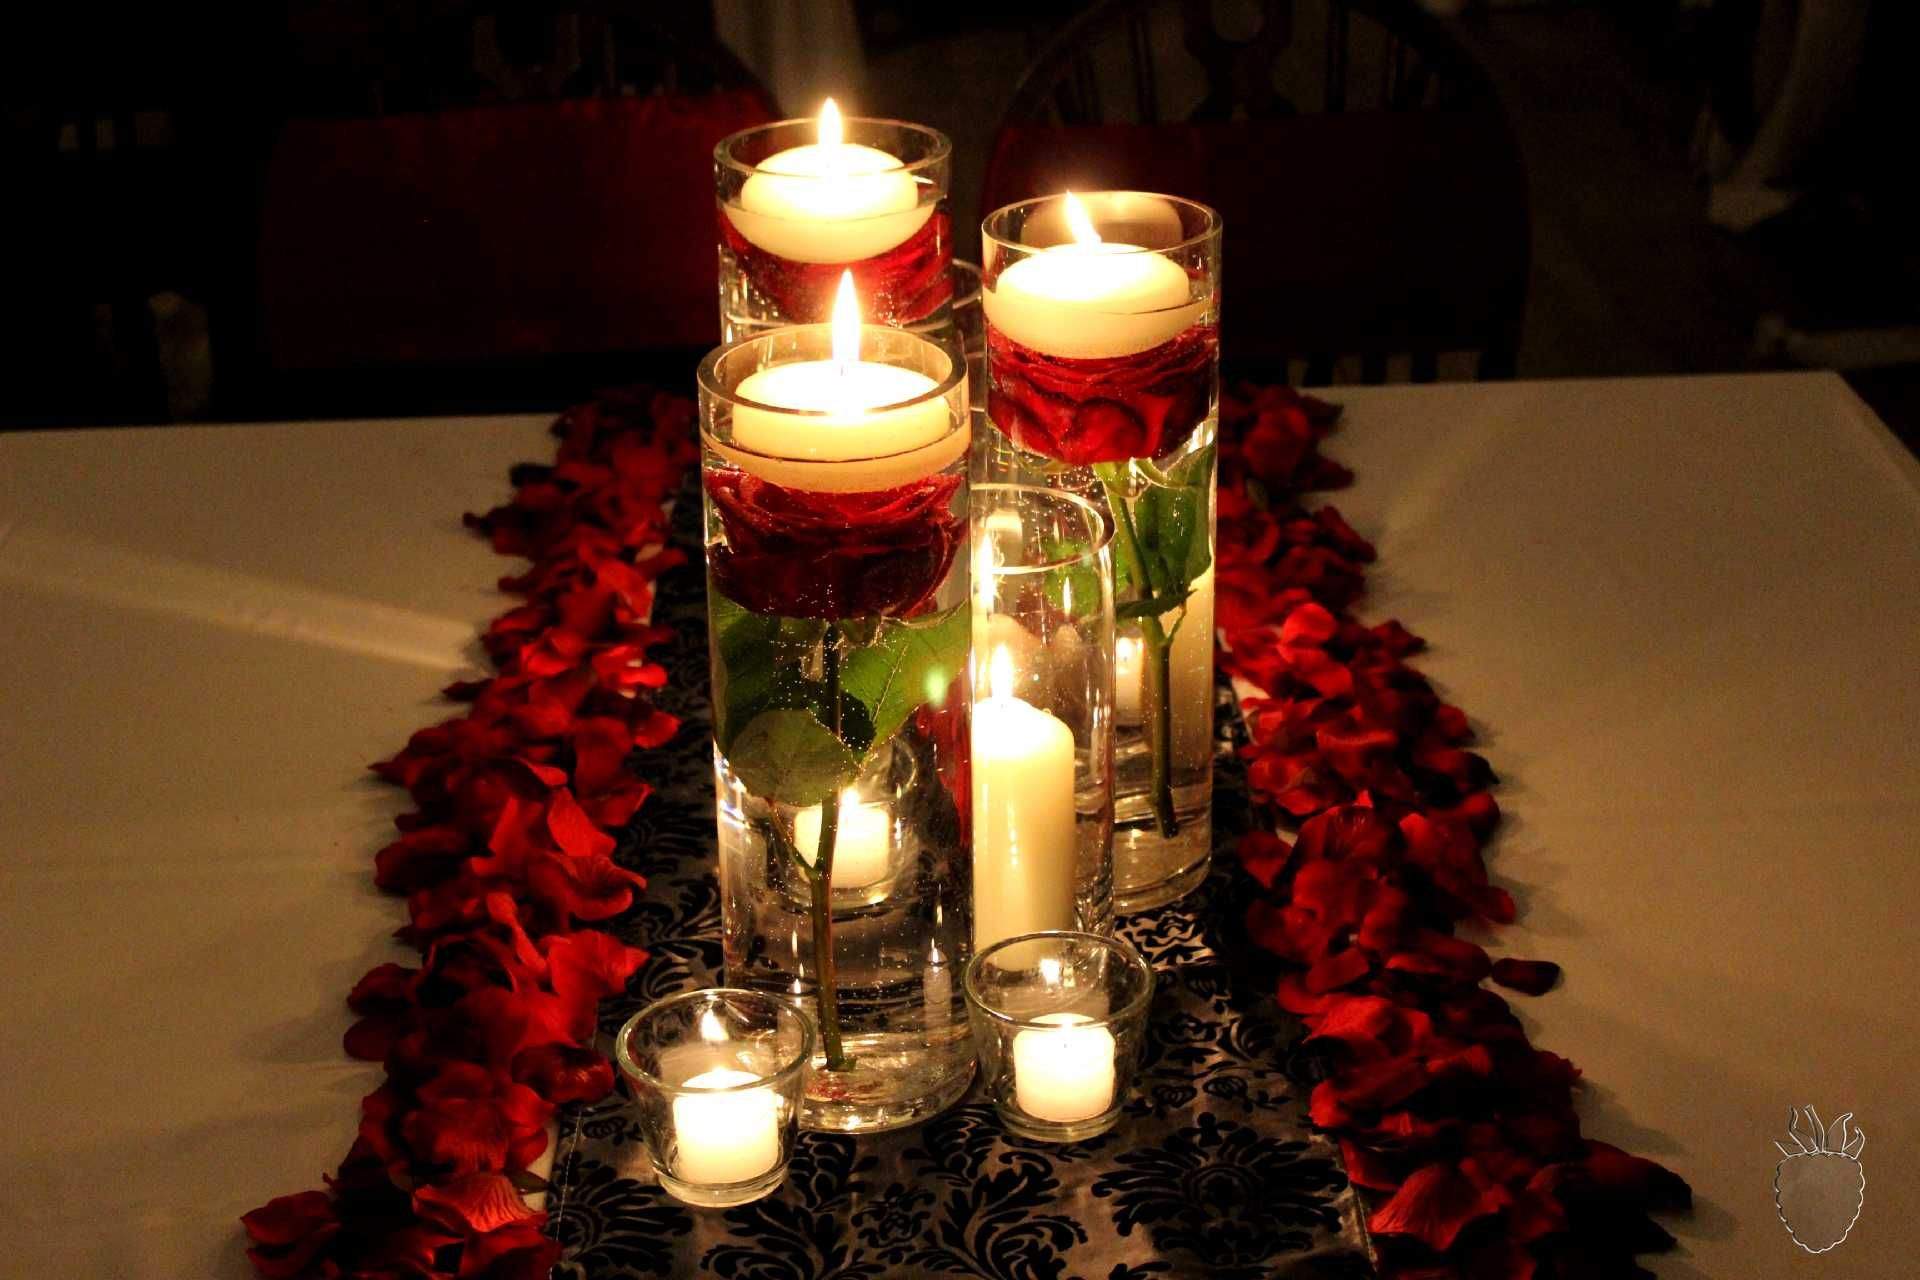 Roses in cylinder vases with candles and rose petals